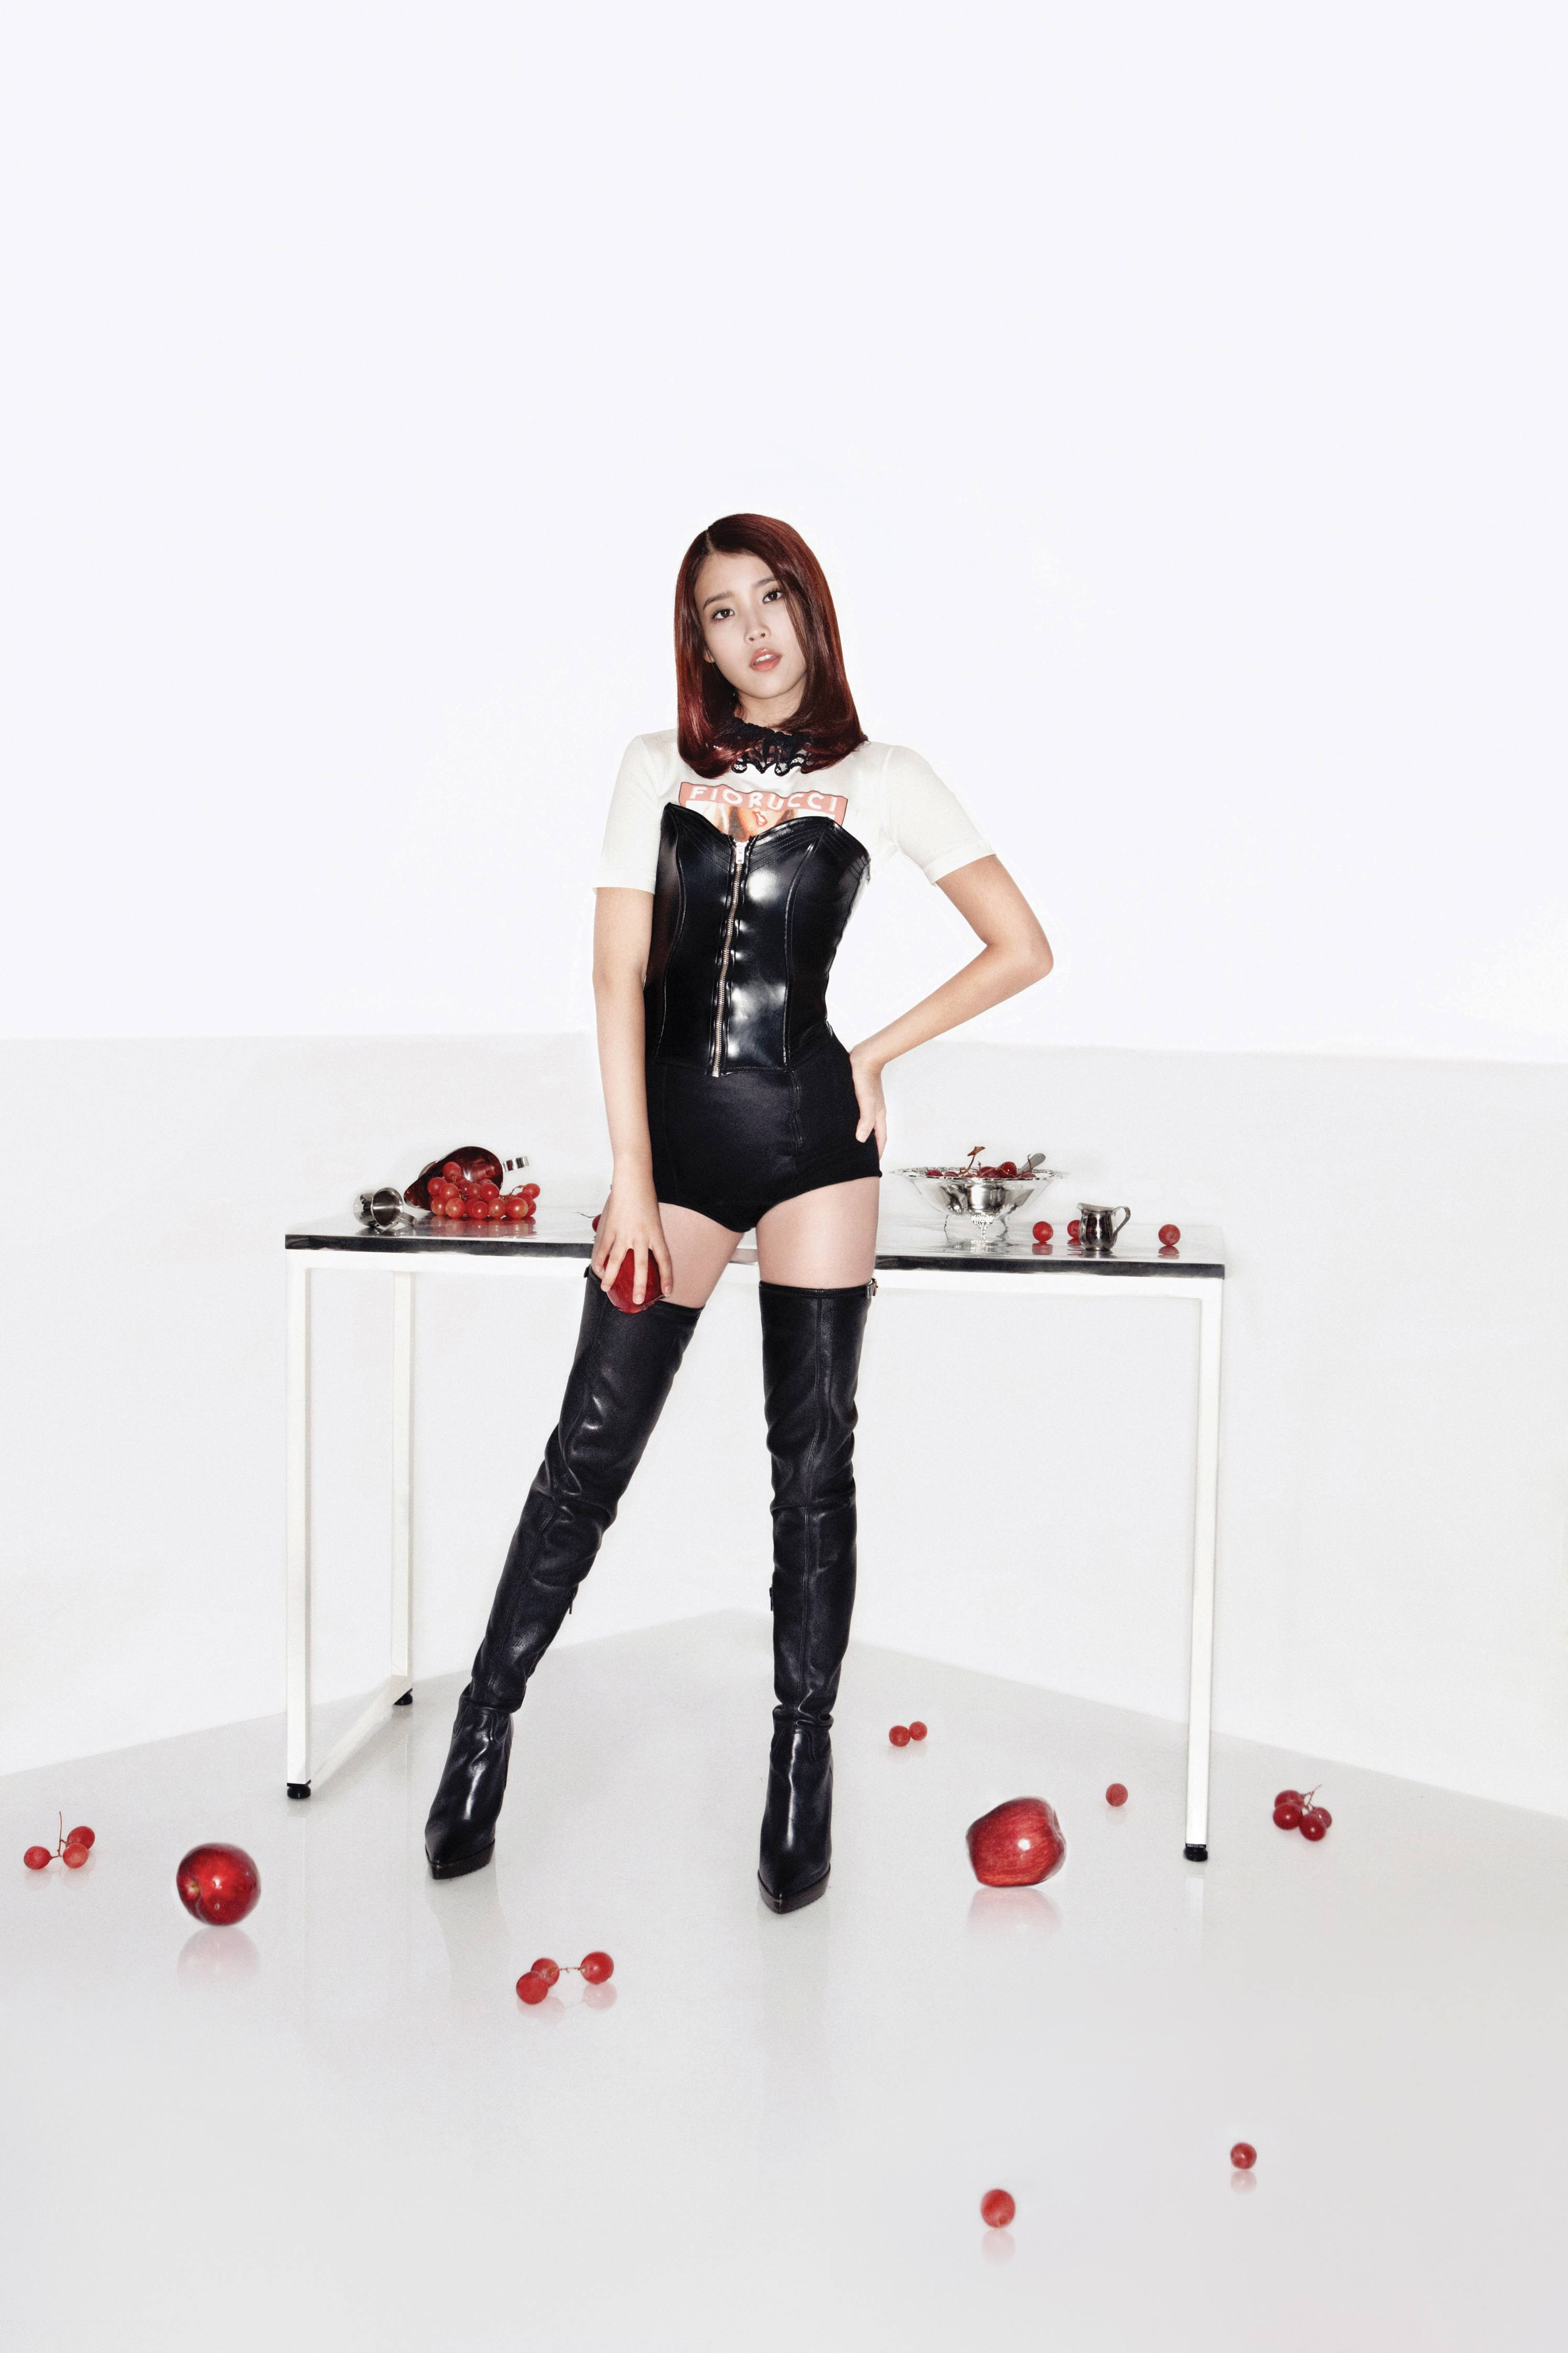 Top 10 Sexiest Outfits Of Iu-7753